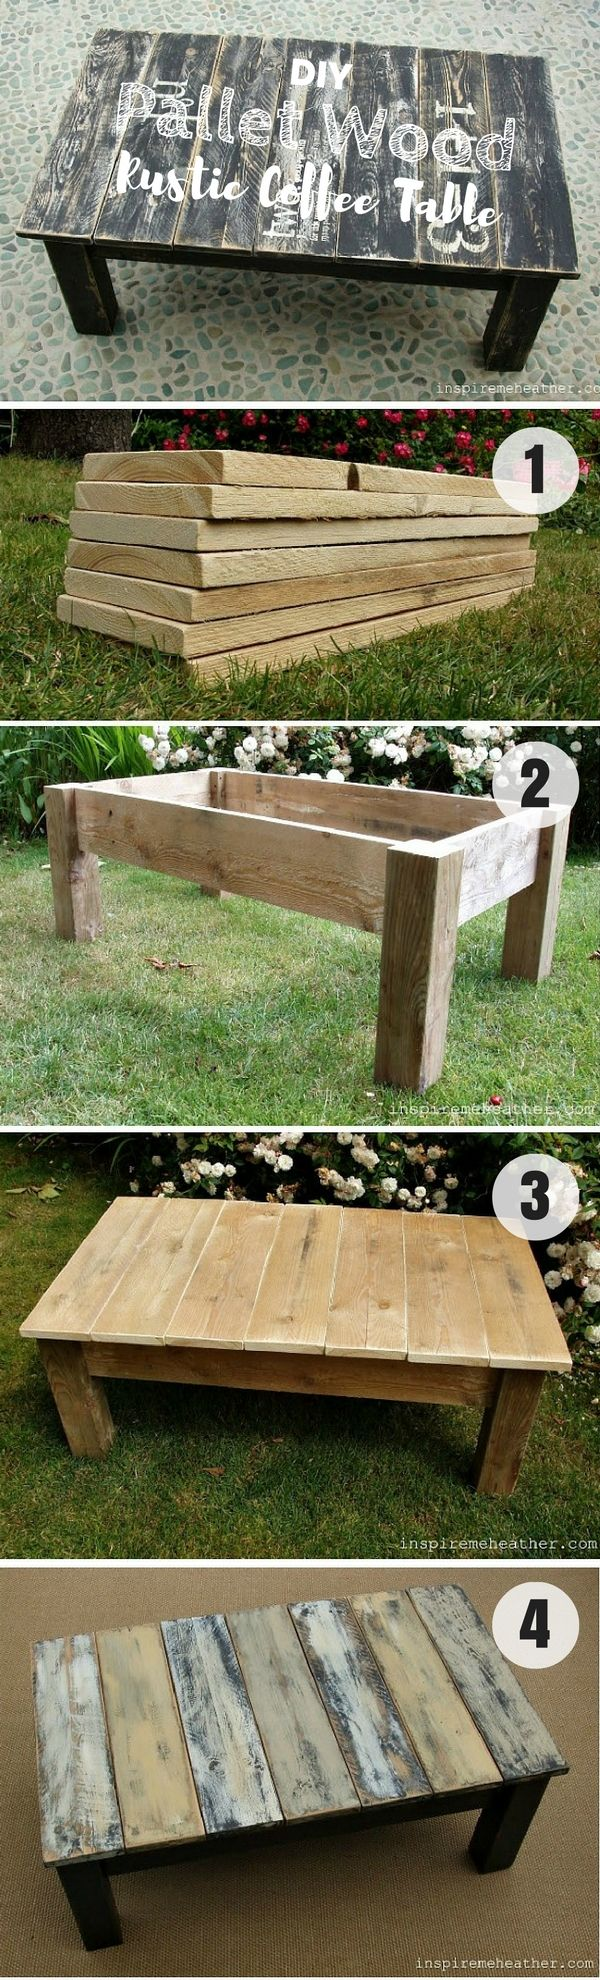 Best 25 pallet coffee tables ideas on pinterest wood pallet best 25 pallet coffee tables ideas on pinterest wood pallet tables woodworking coffee table ideas and wood pallet couch geotapseo Gallery